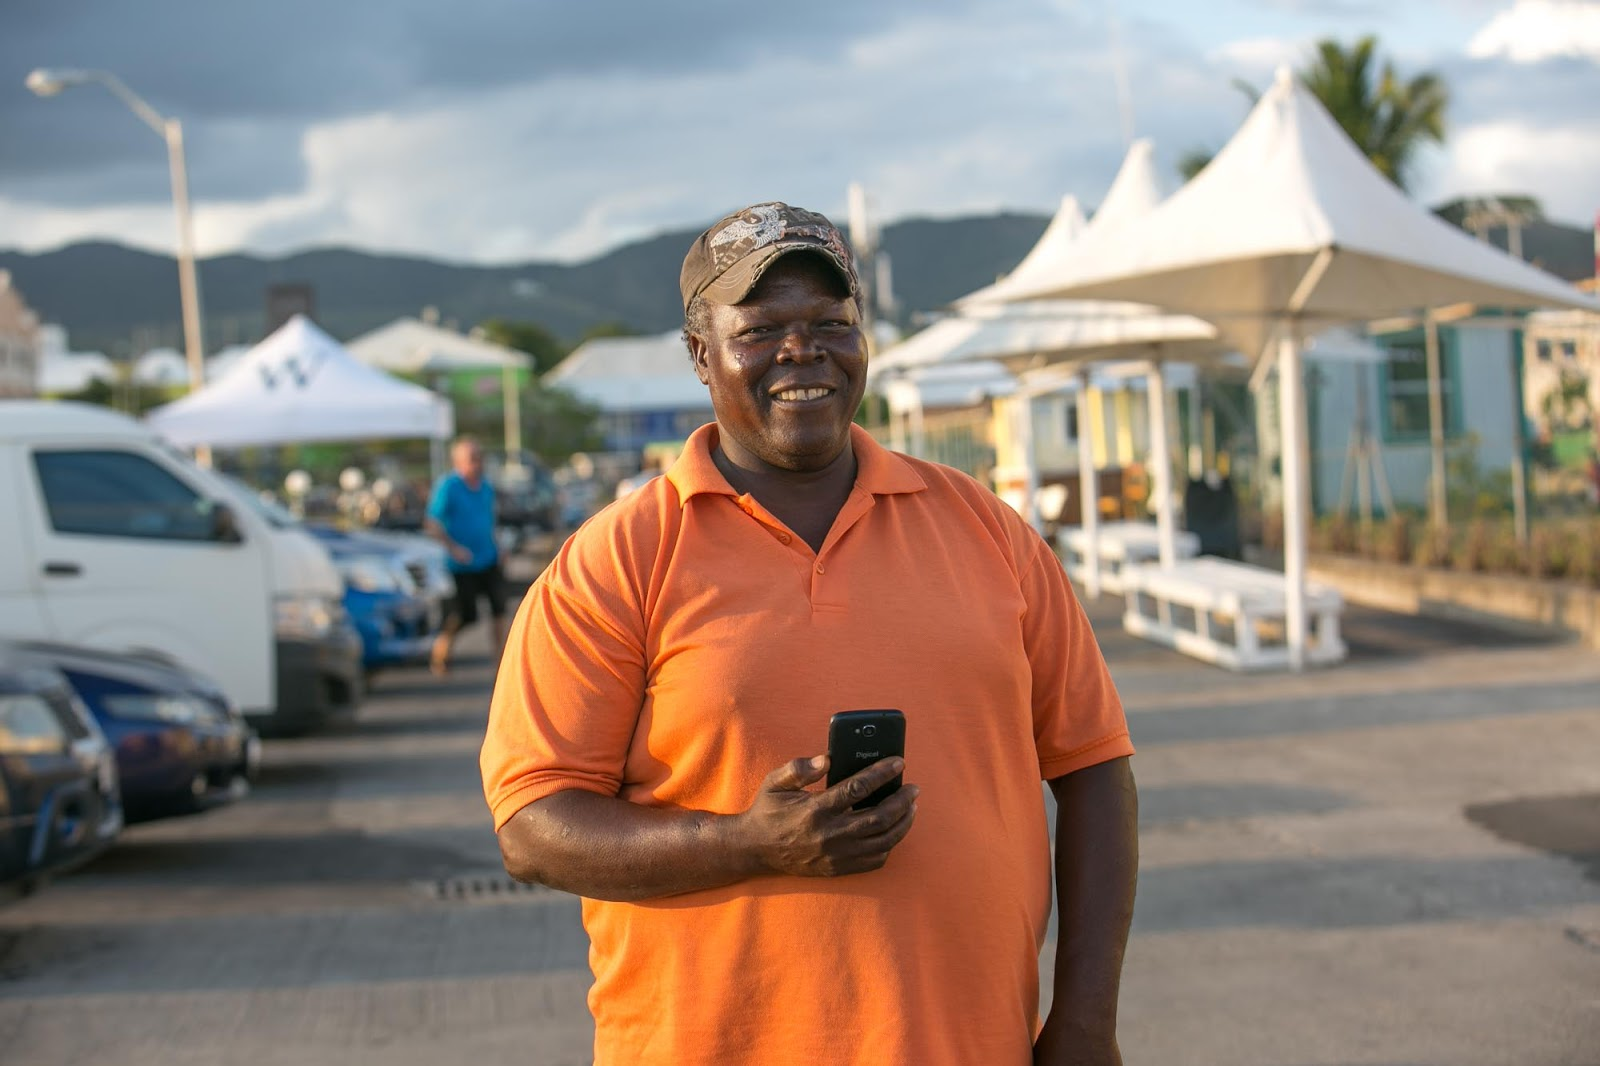 Marvin, our taxi driver in St. Kitts